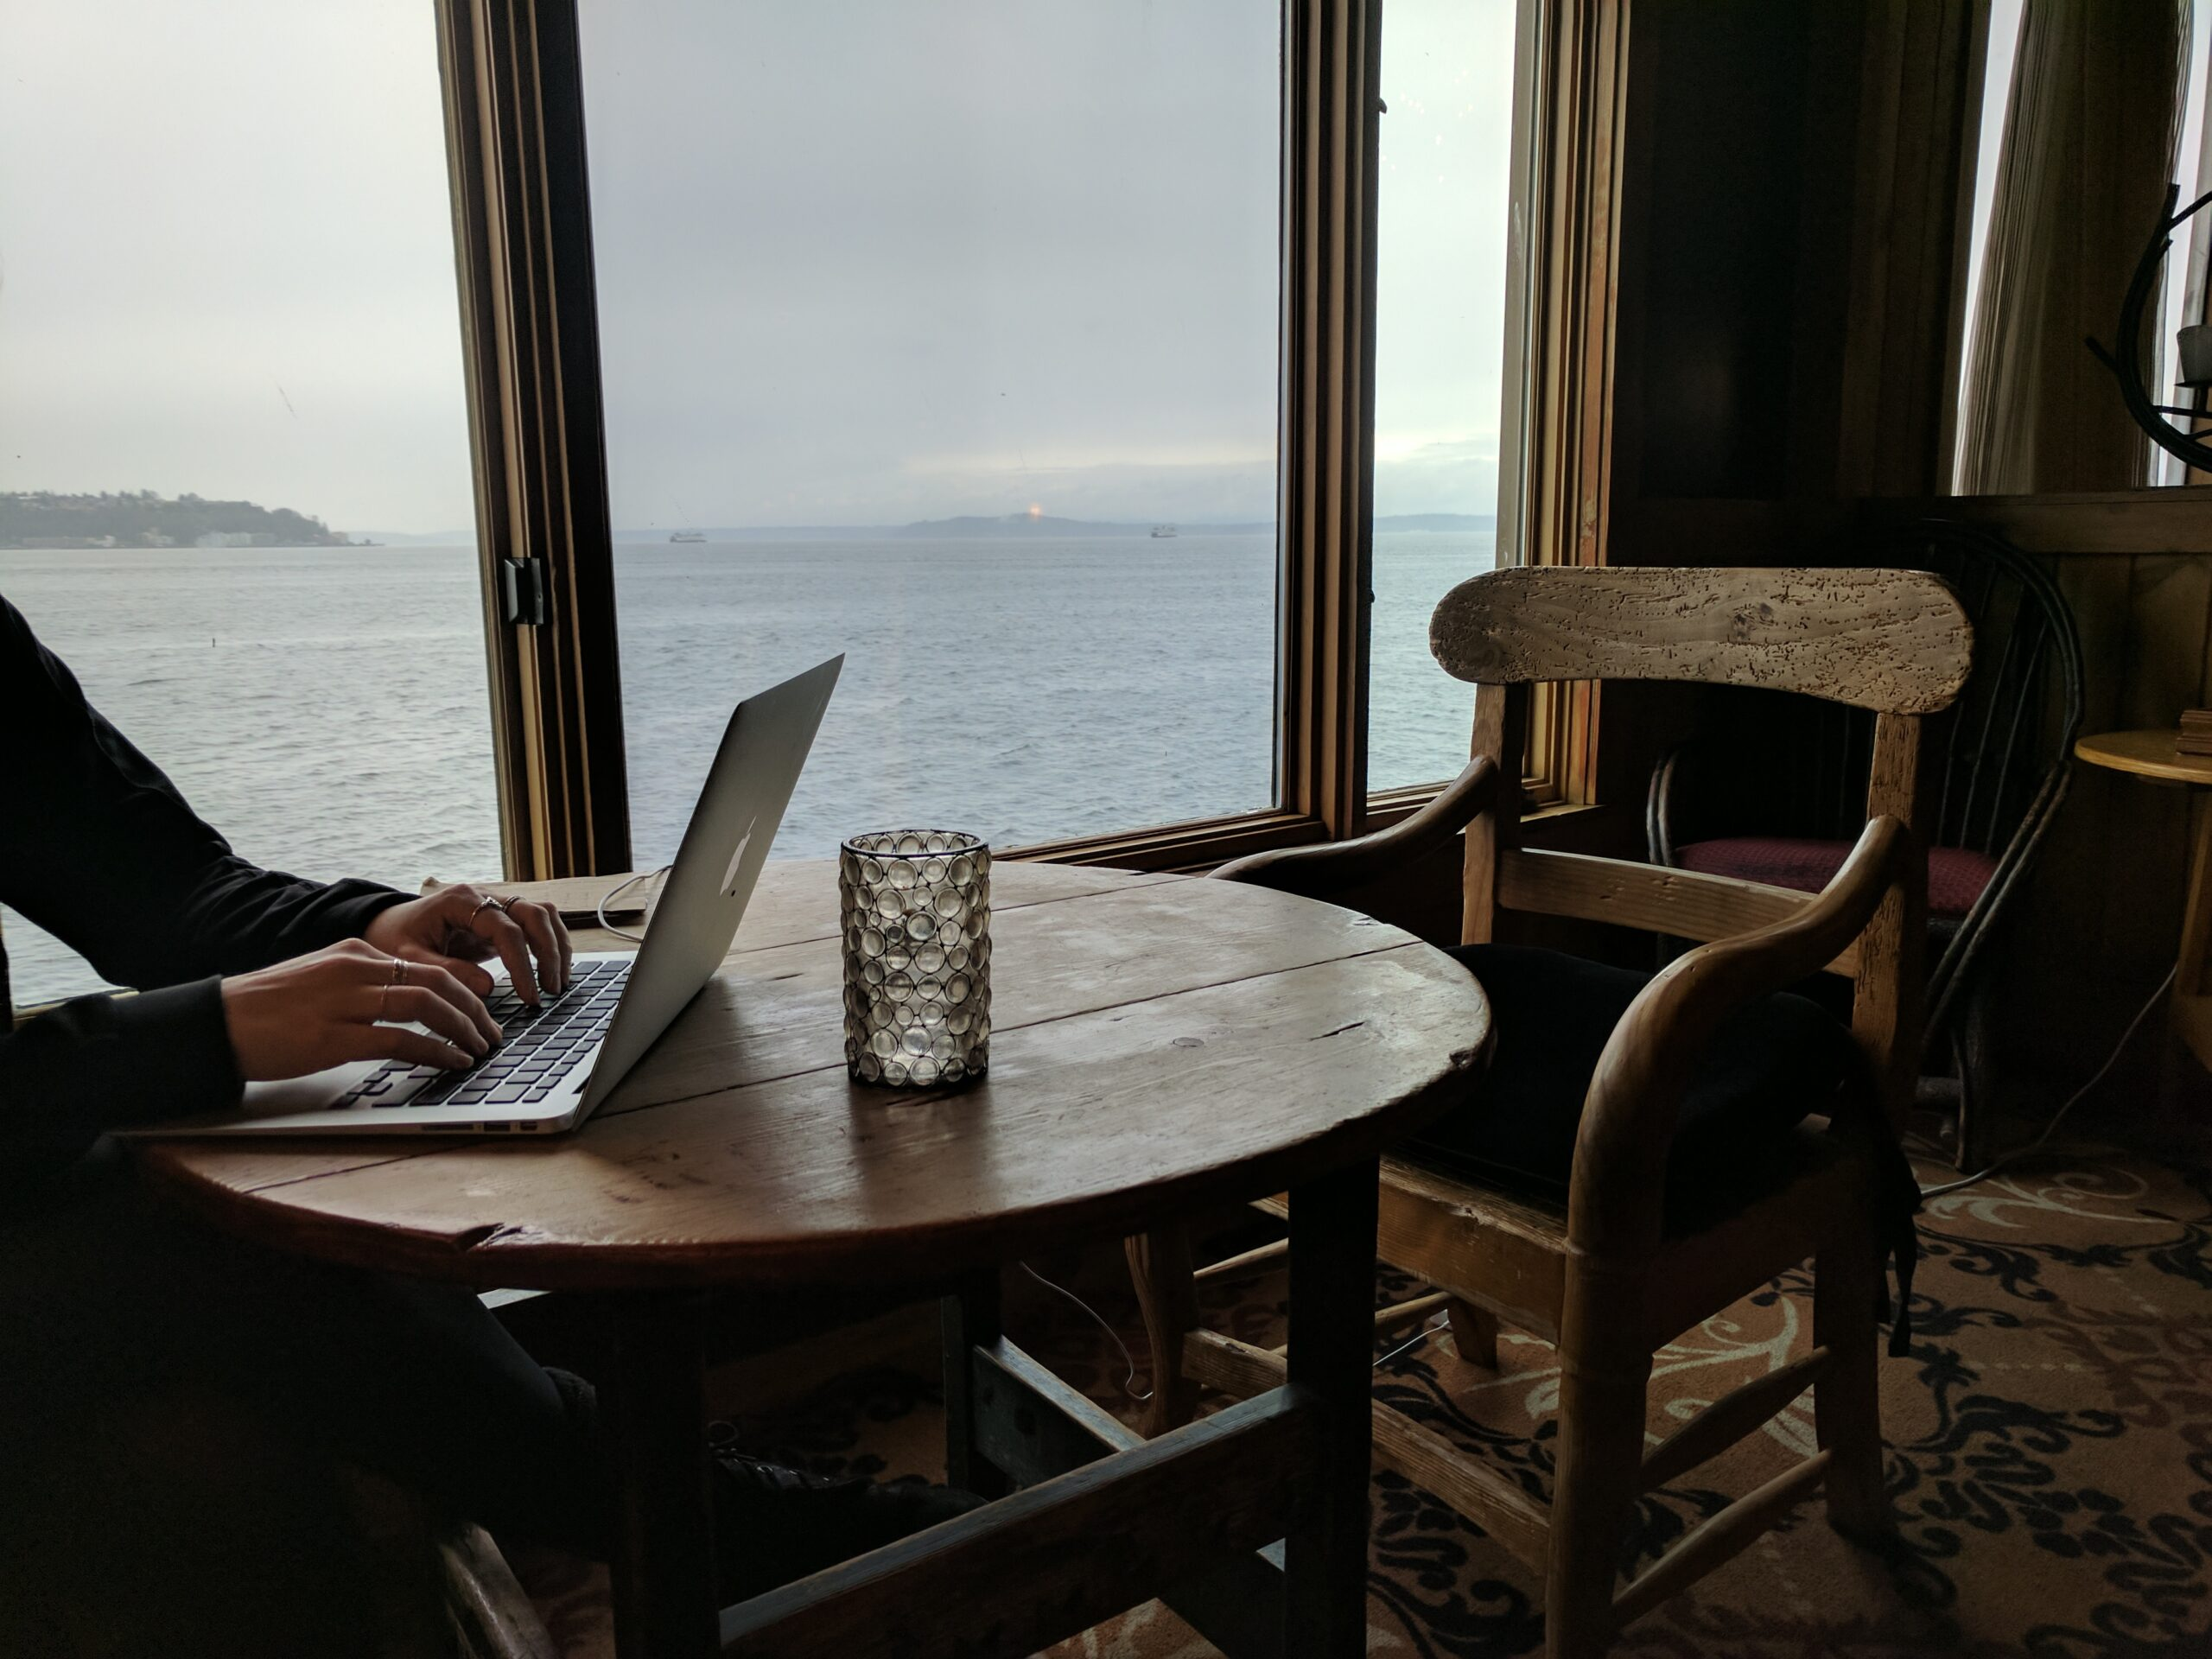 A table at the edgewater hotel, in front of a window with a elliott bay view.